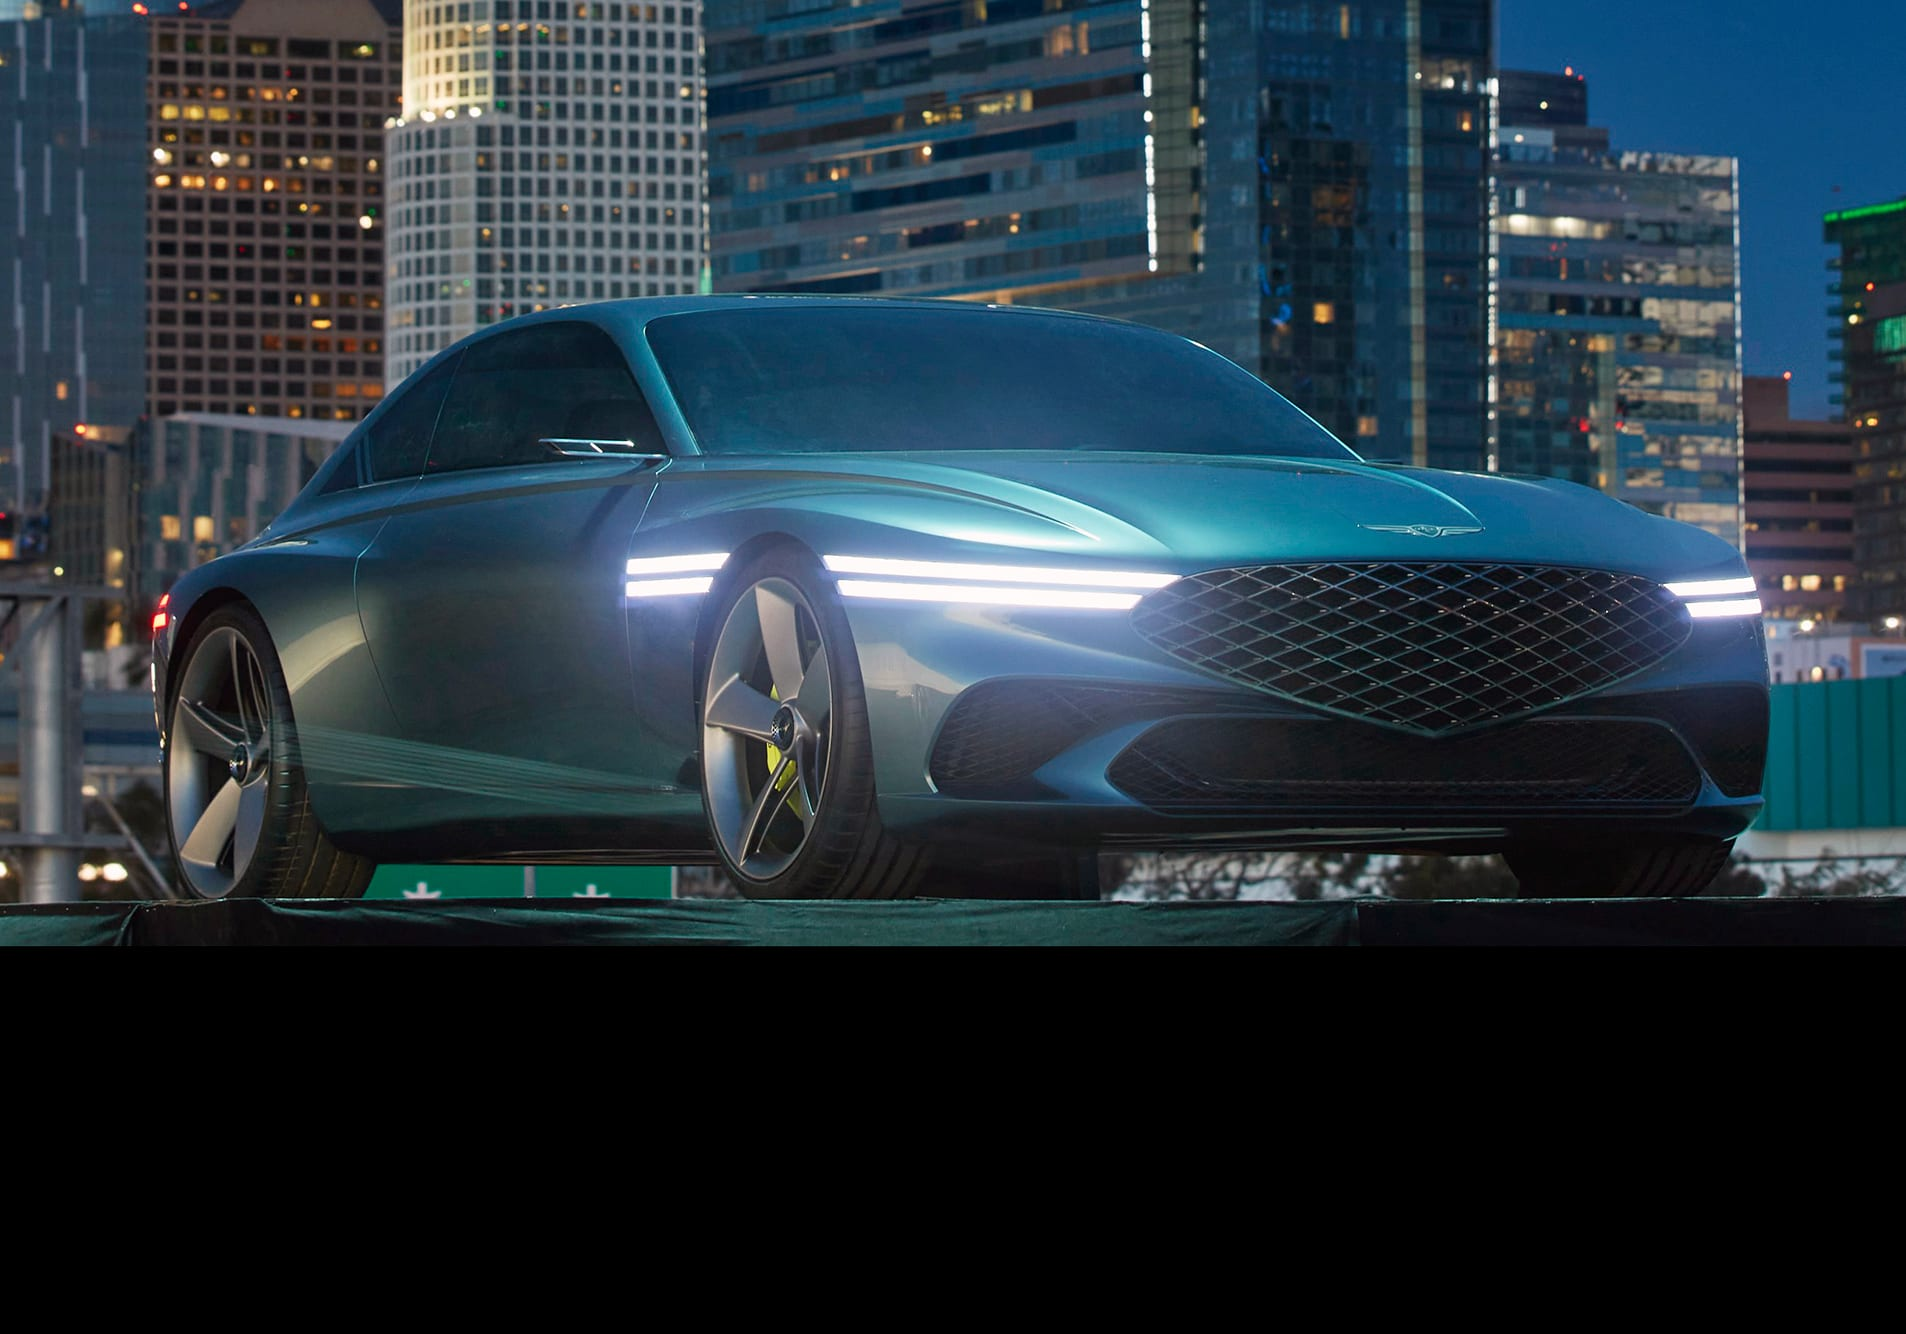 2021 Genesis X Electric Coupe Concept 7 Jpg